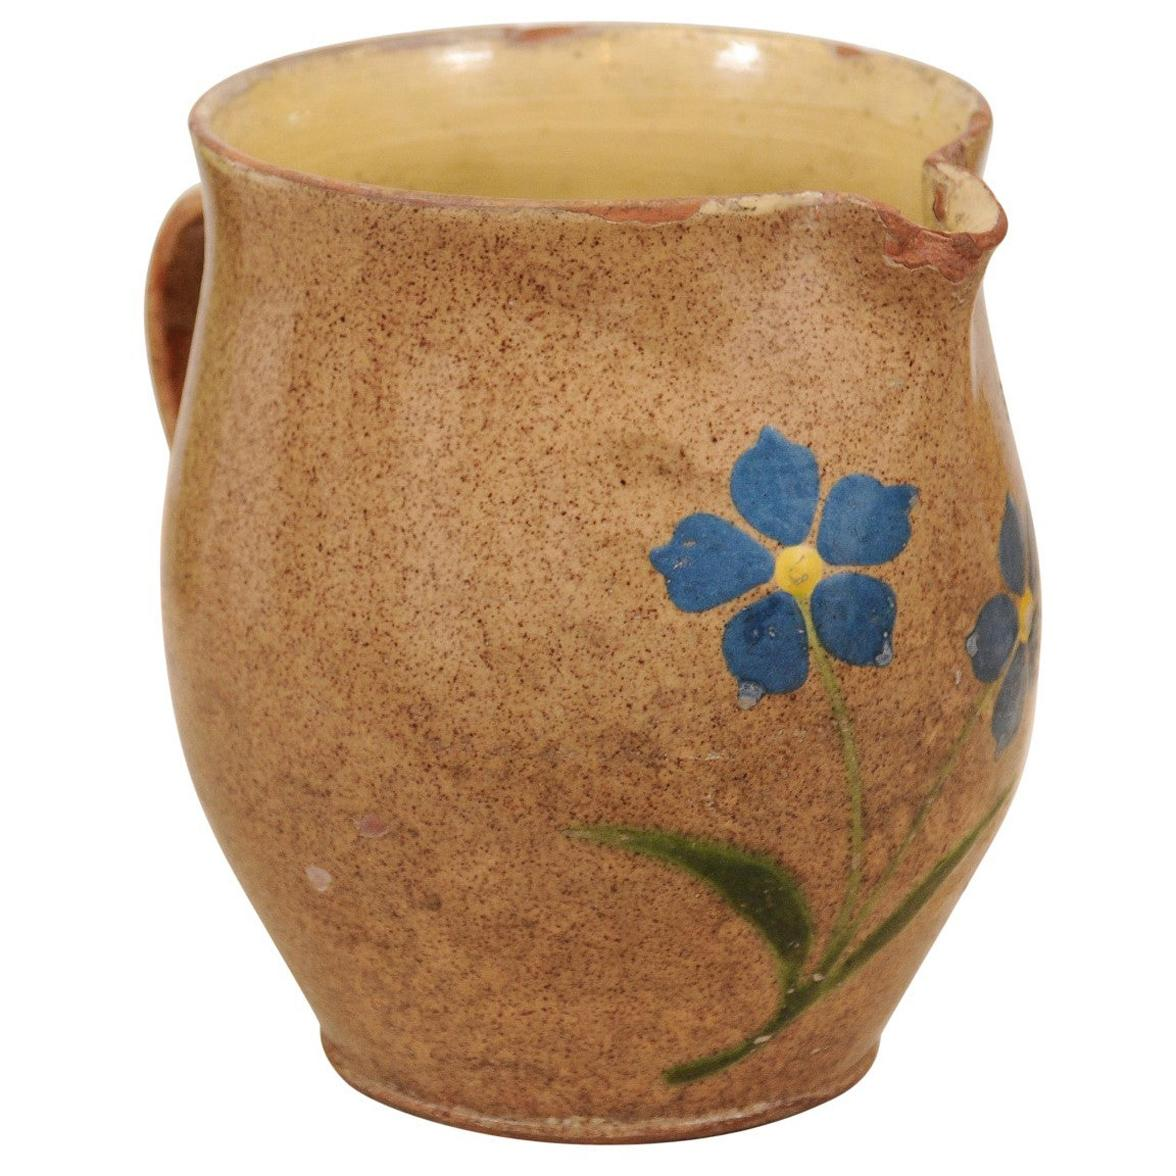 French 19th Century Rustic Pottery Pitcher with Mustard Glaze and Blue Flowers